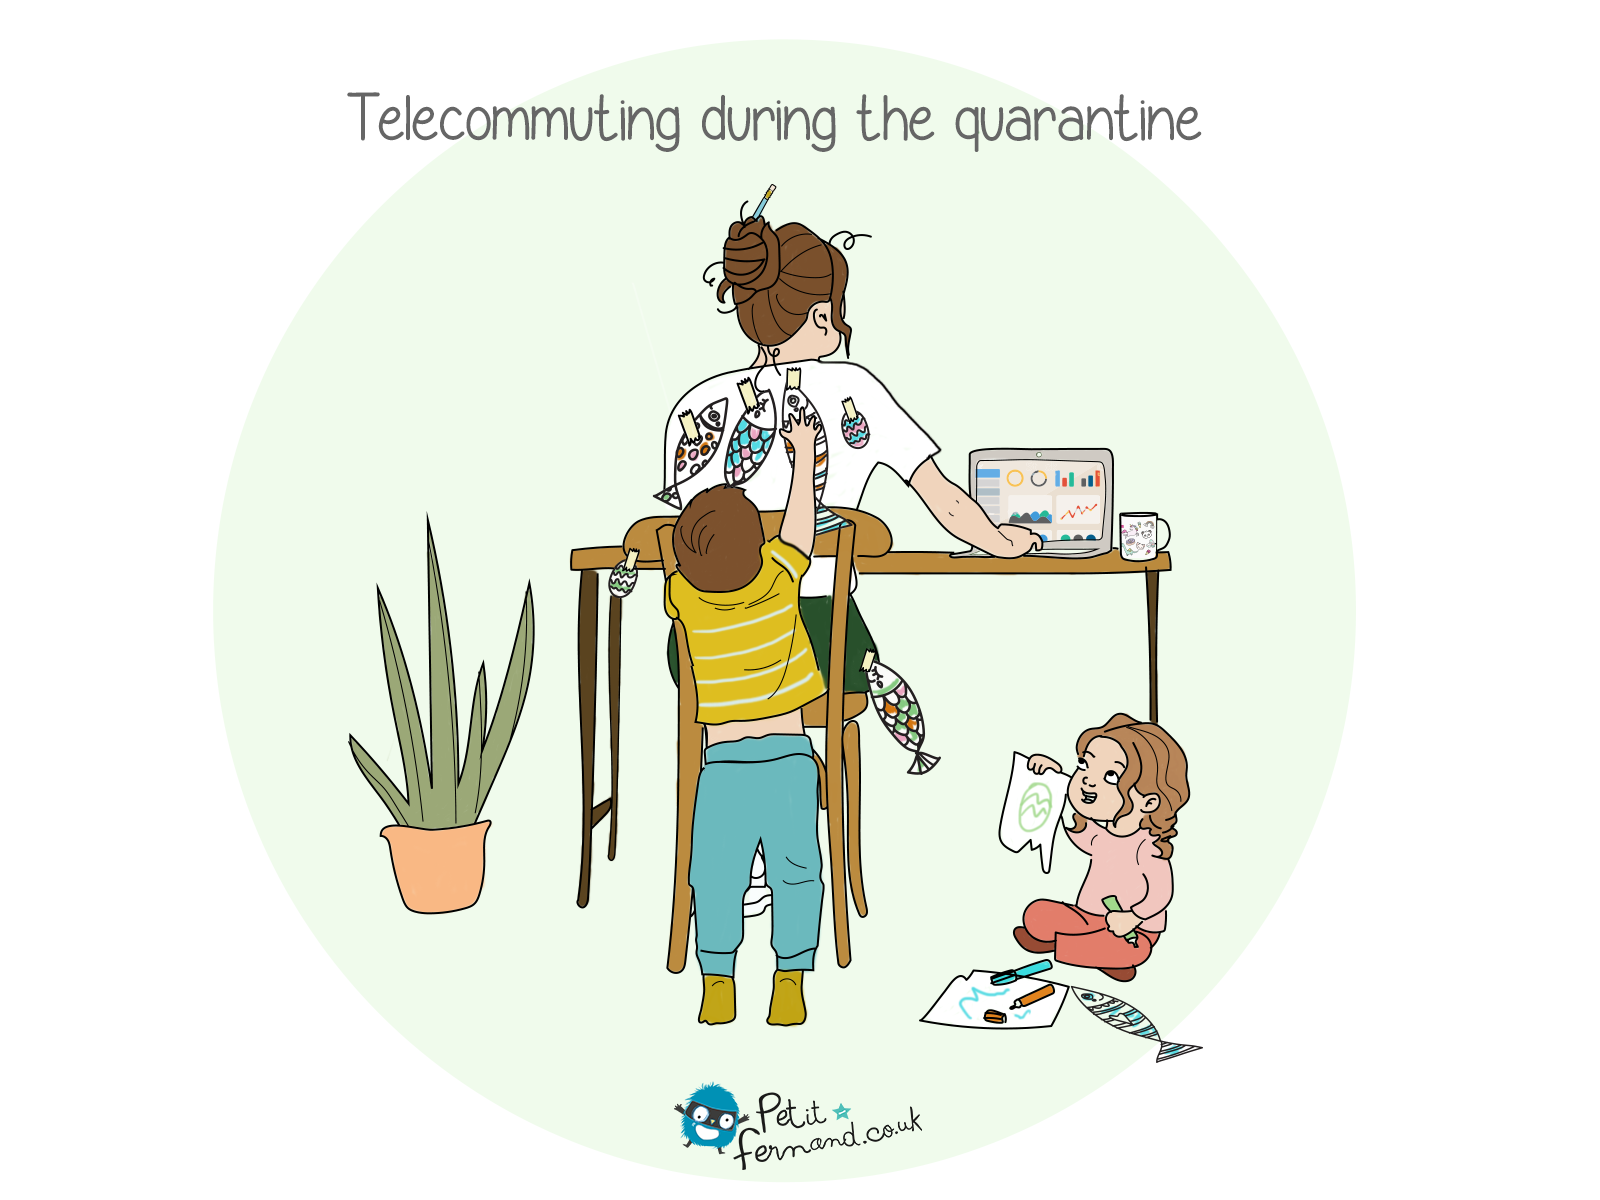 During quarantine, managing children and telecommuting is not easy at all!